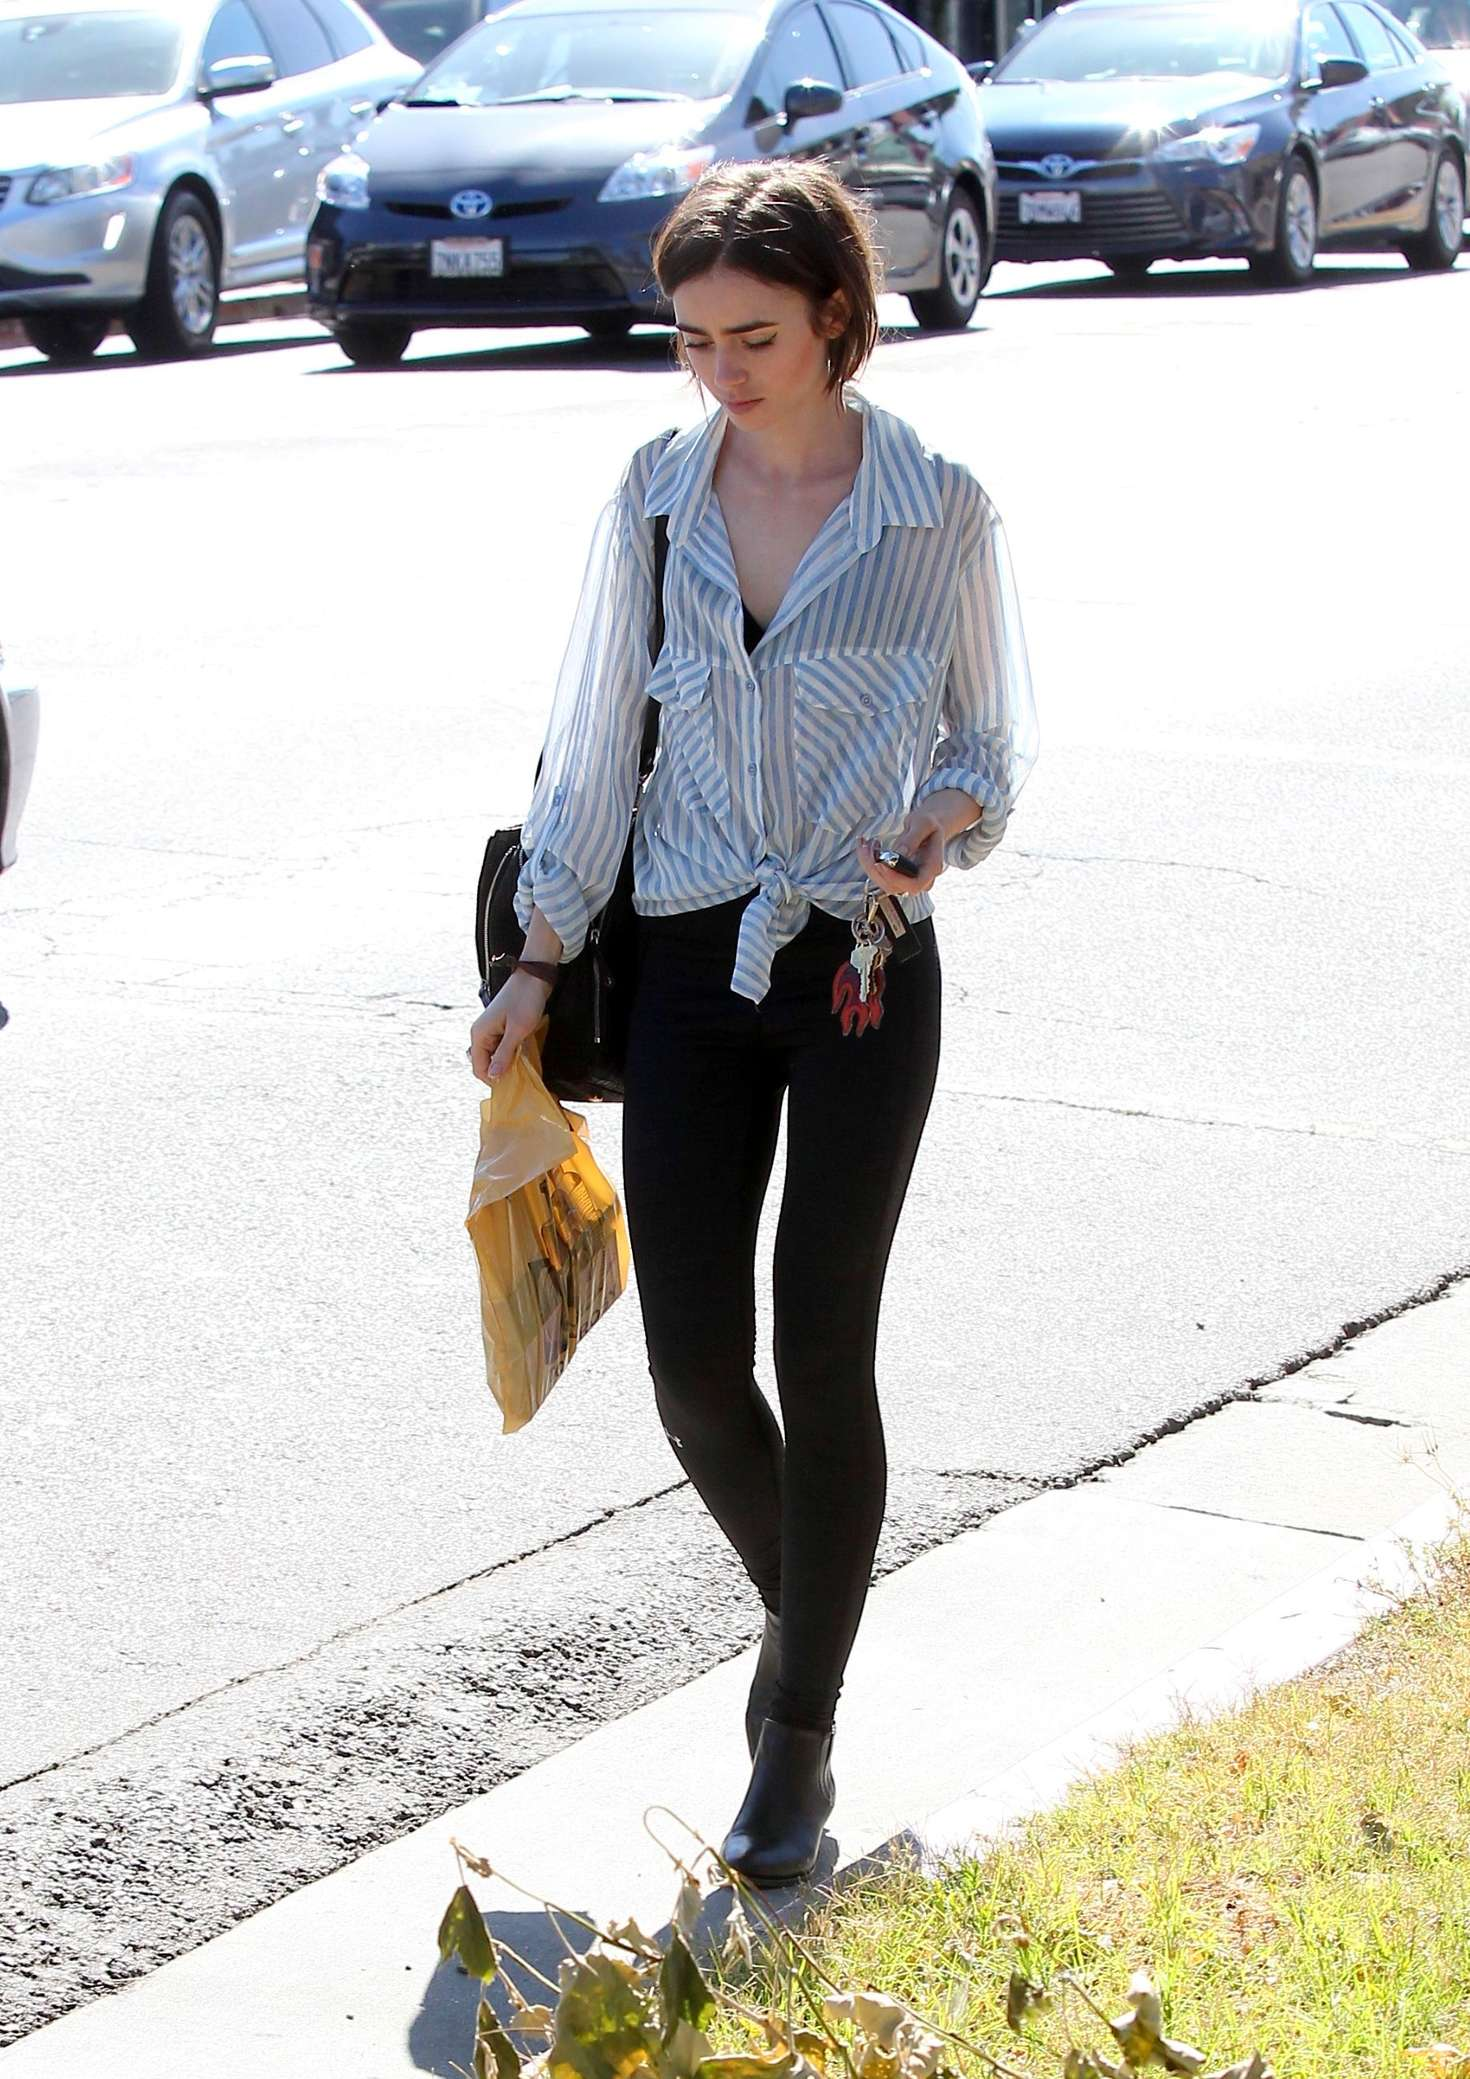 941f5a4d401 Lily Collins in Tights Shopping -10. Lily Collins in Tights Shopping in Los  Angeles